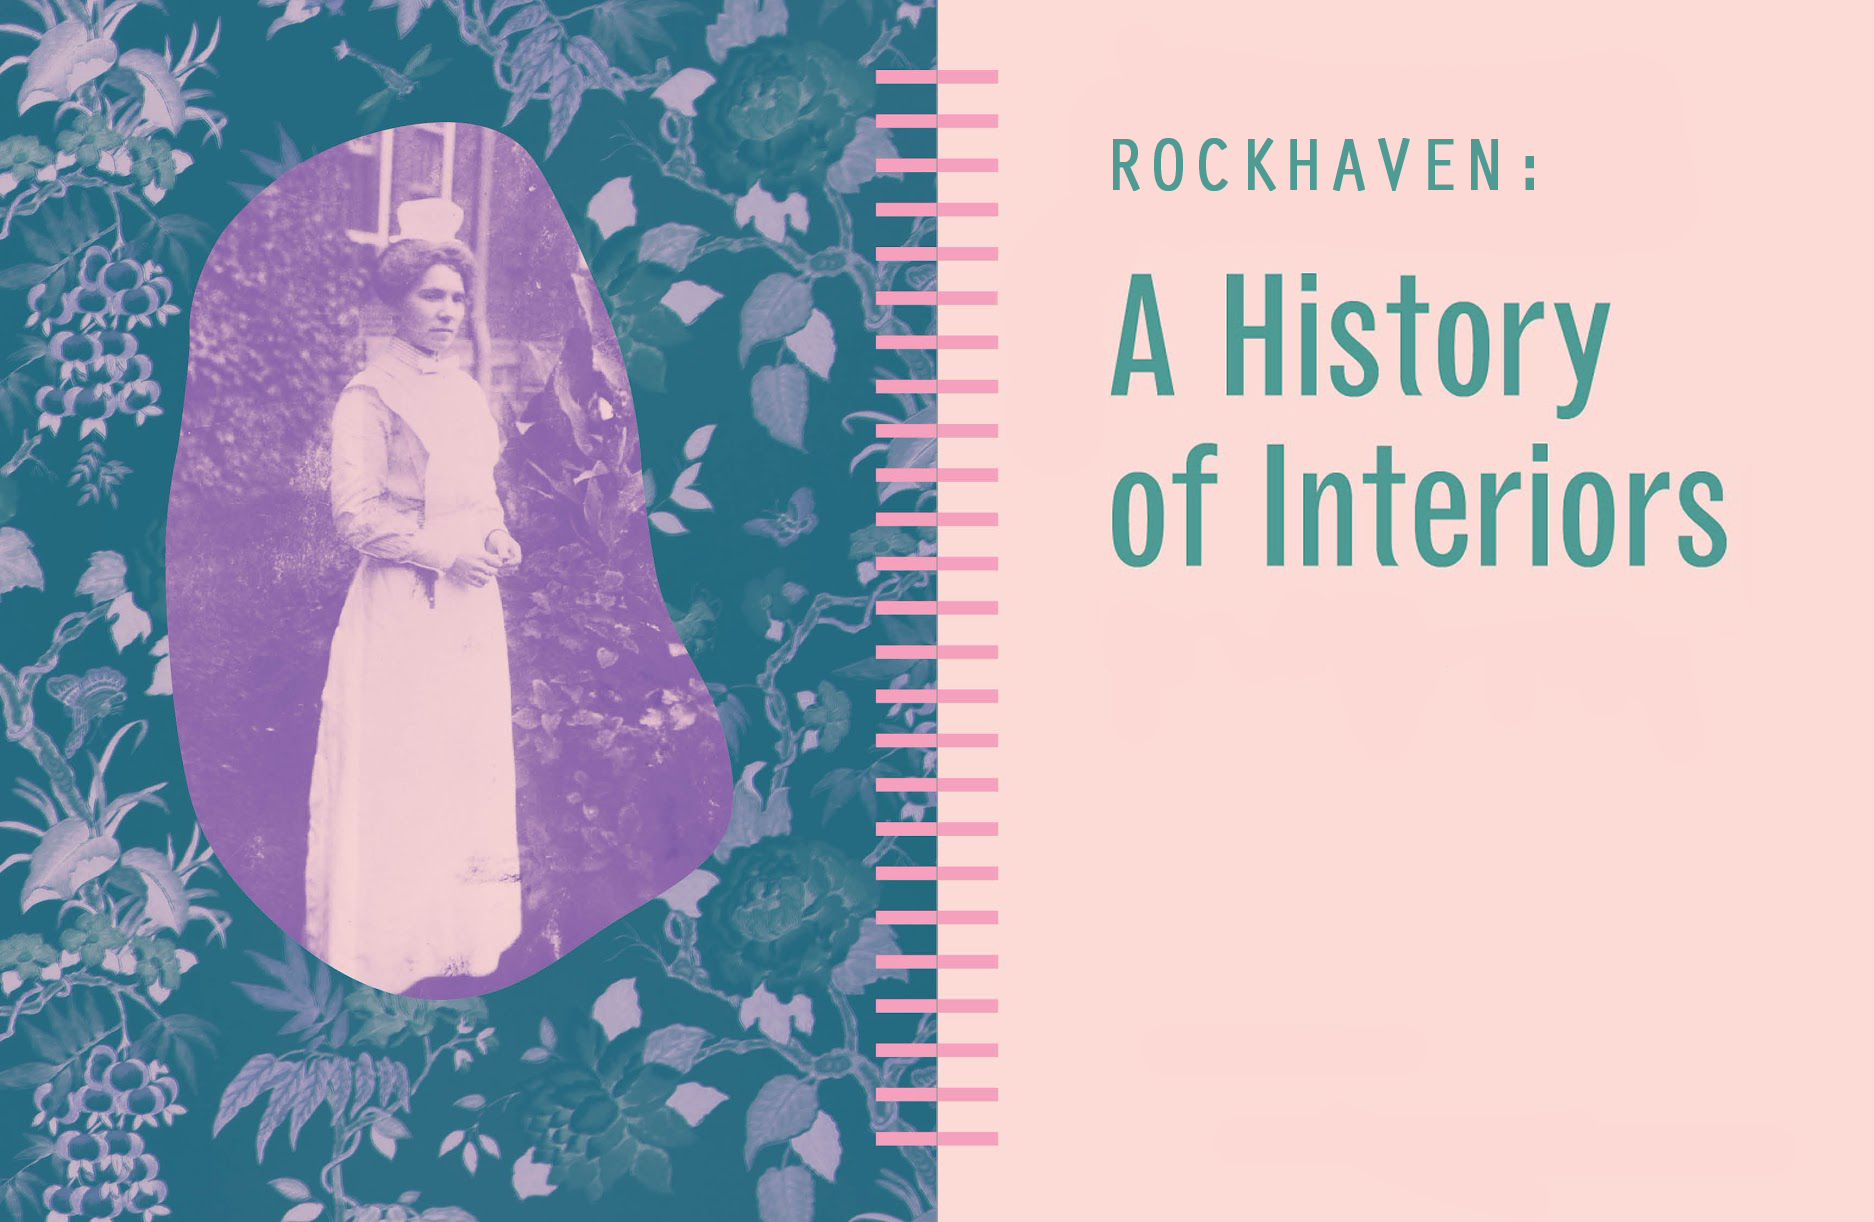 A collection of essays inspired by Rockhaven Sanitarium, Crescenta Valley's proto-feminist psychiatric institution founded in 1923. Featuring contributions from writers Allison Noelle Conner, Emma Kemp, Orenda Fink, Johanna Hedva, Suzanne Scanlon, Mady Schutzman, and Adriana Widdoes.